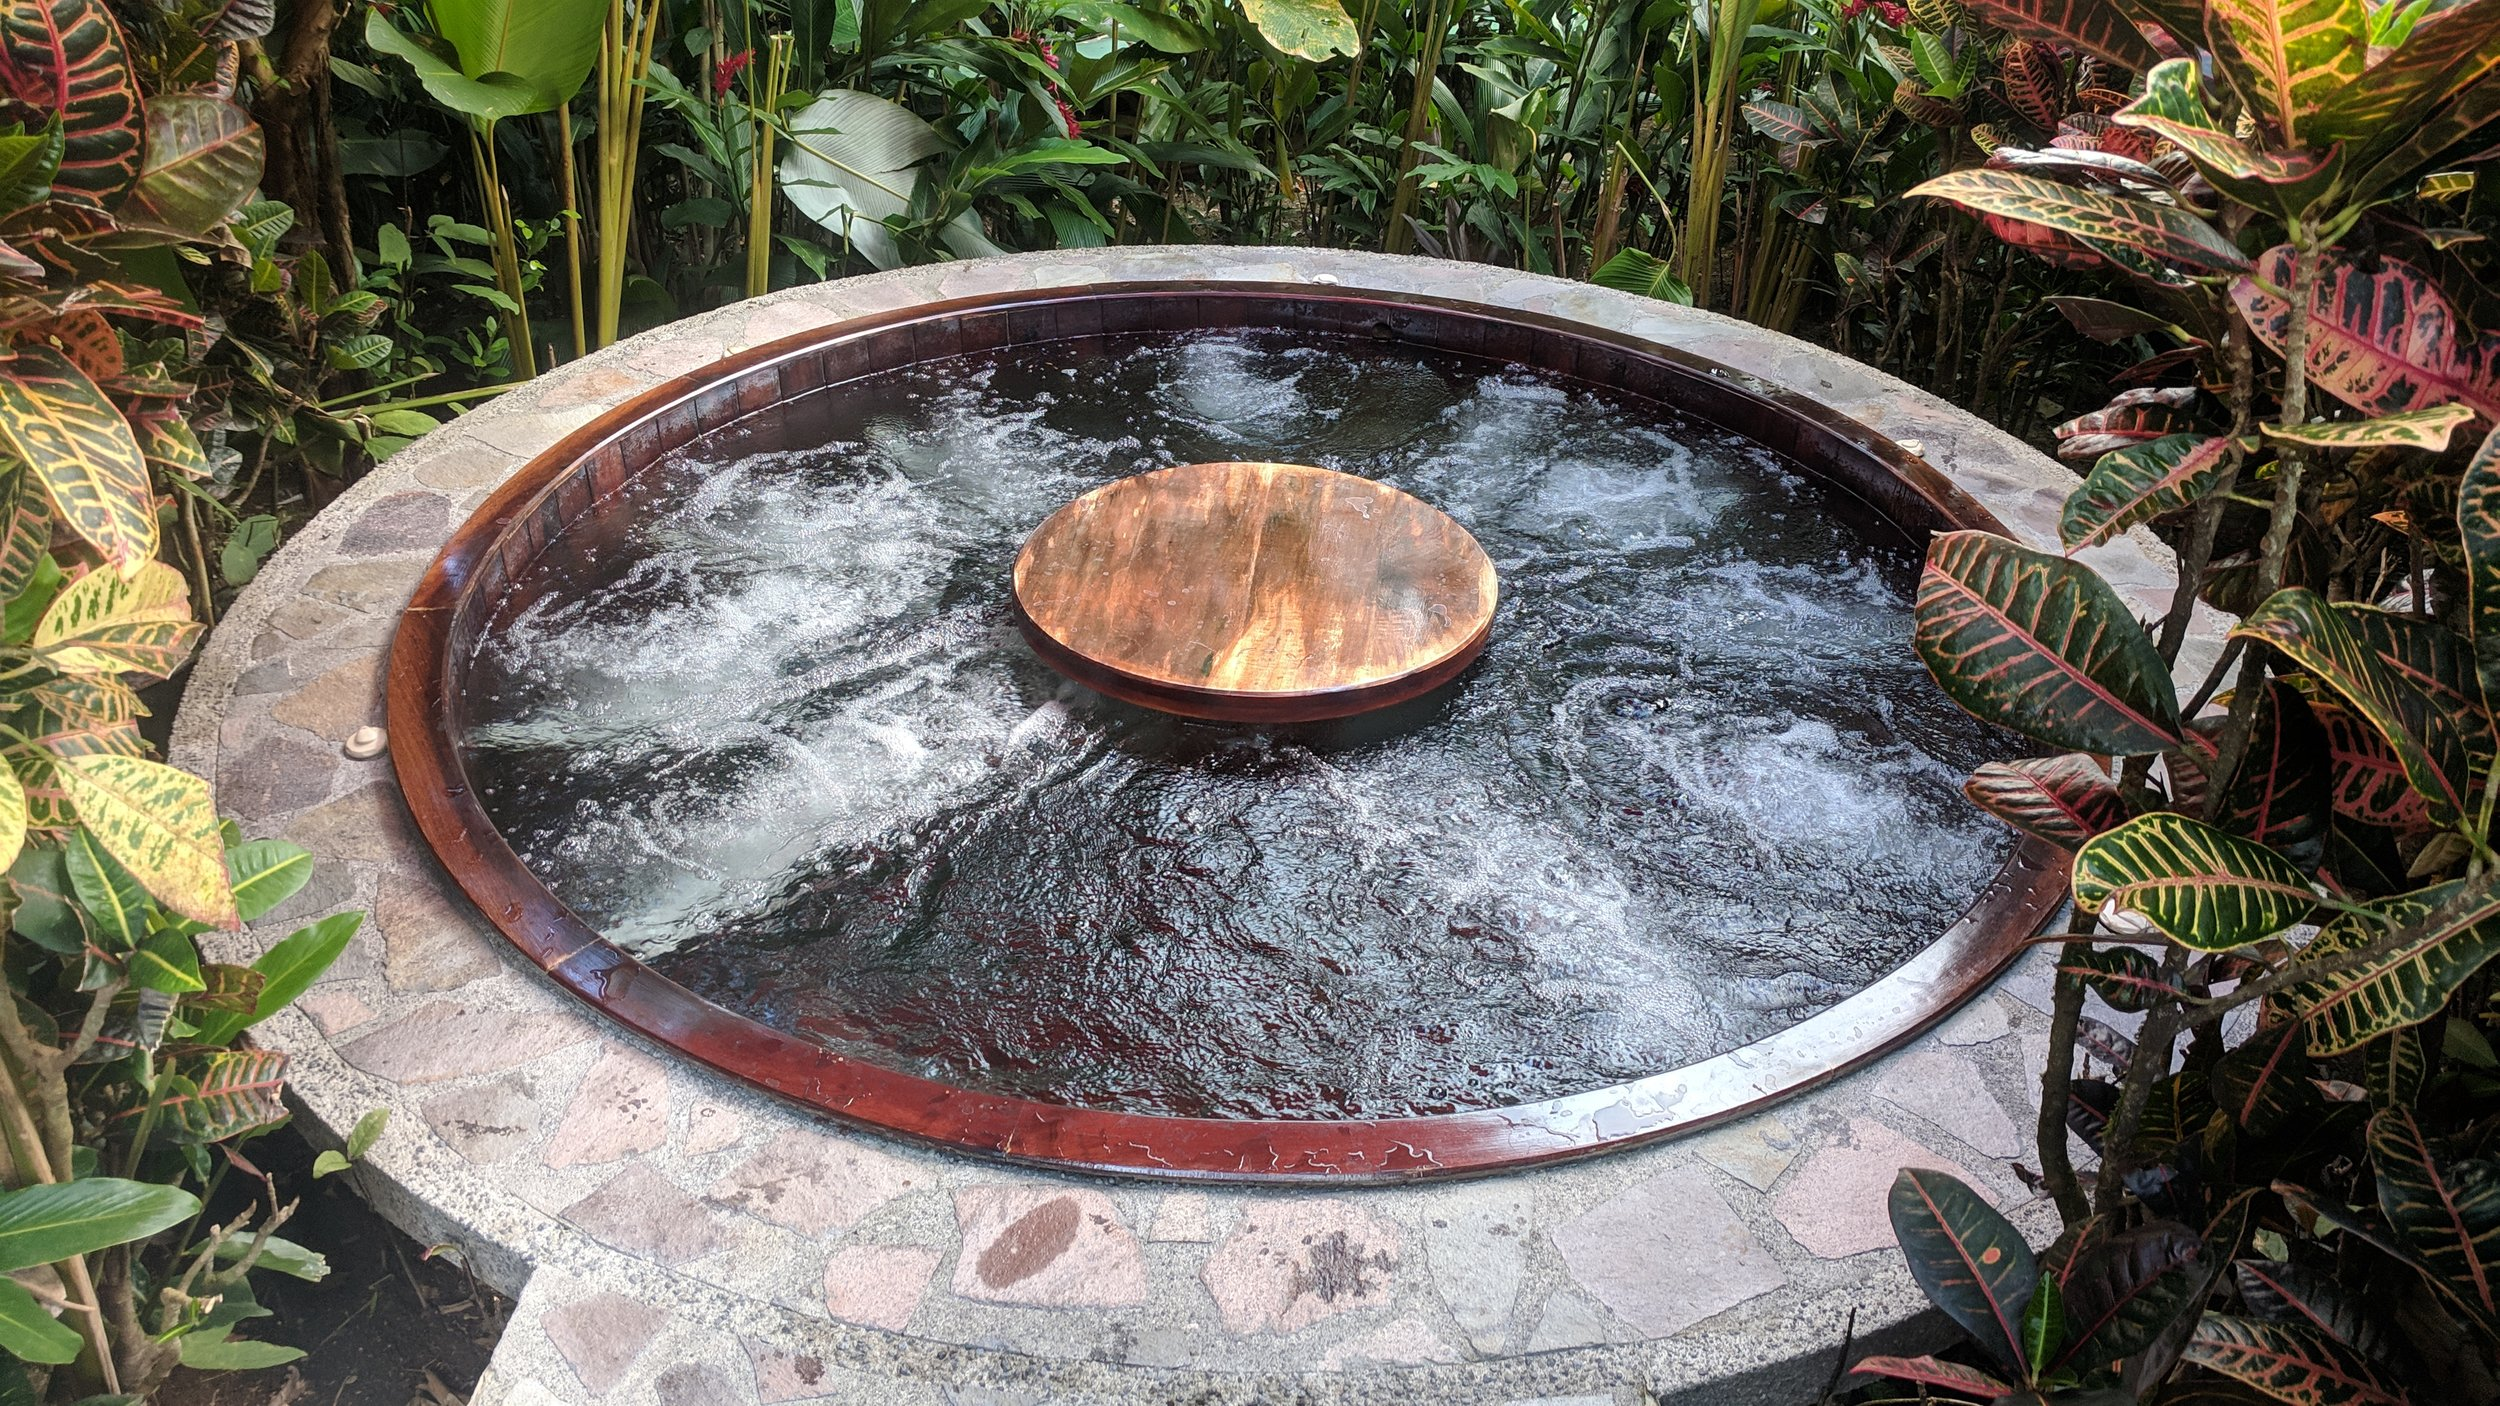 There were also several small outdoor hot tubs nearby.